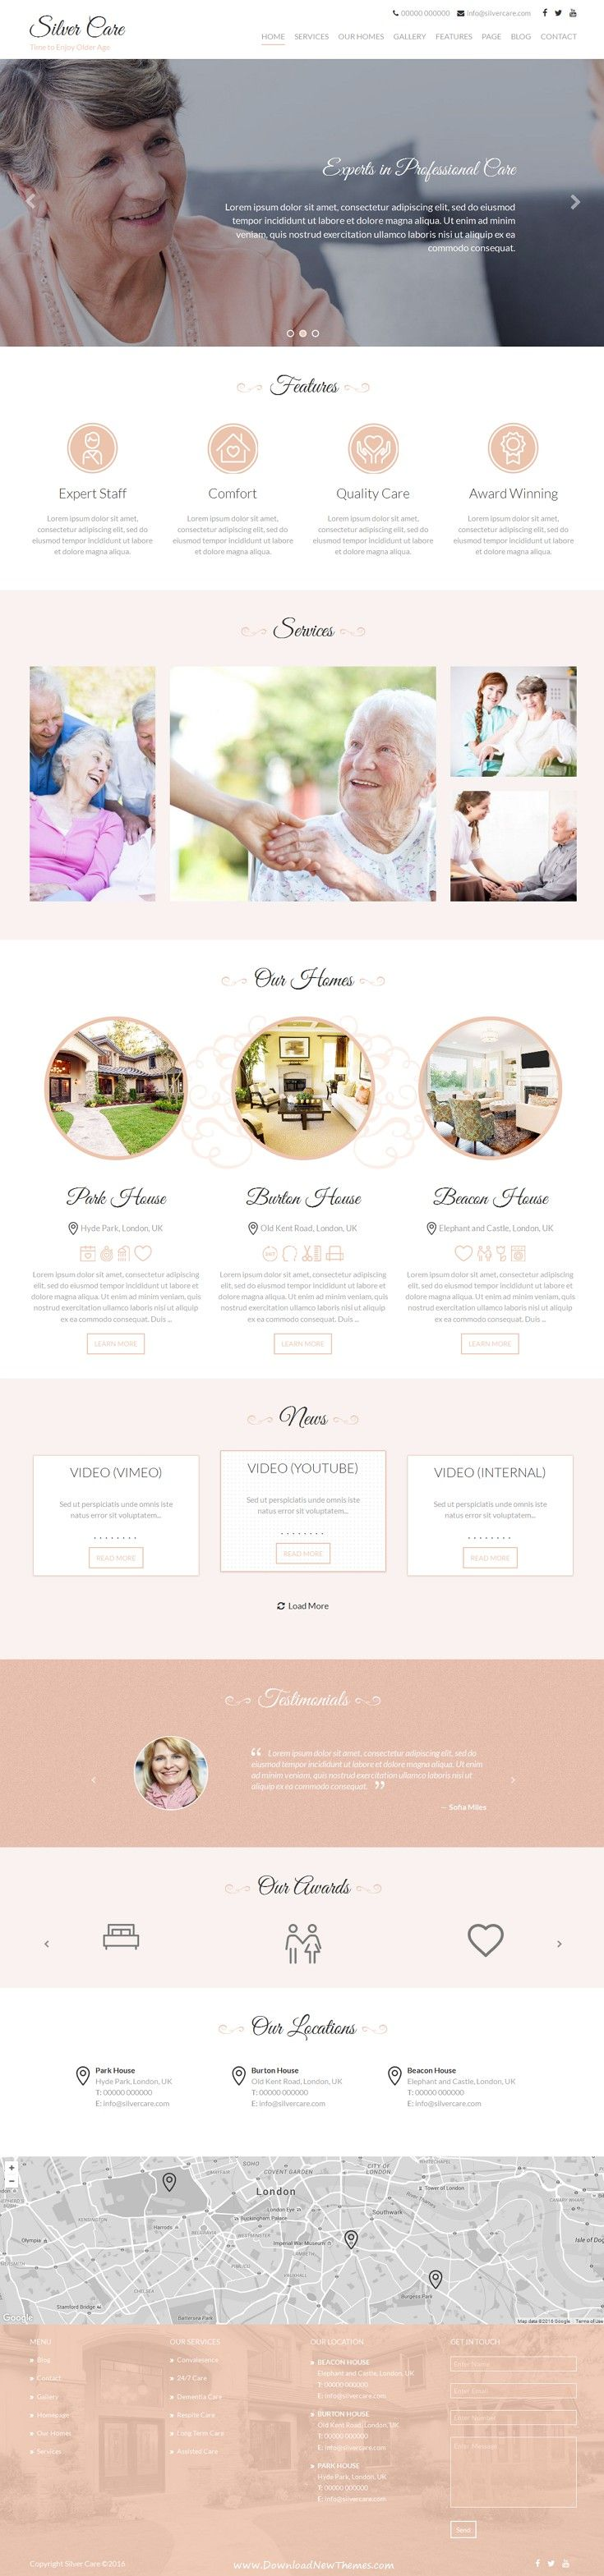 Silver Care is a premium WordPress theme designed for the #healthcare industry. The theme has a clean, modern and friendly design and is perfect for senior care services such as care homes, assisted living, #sheltered accommodation and medical care providers #website.